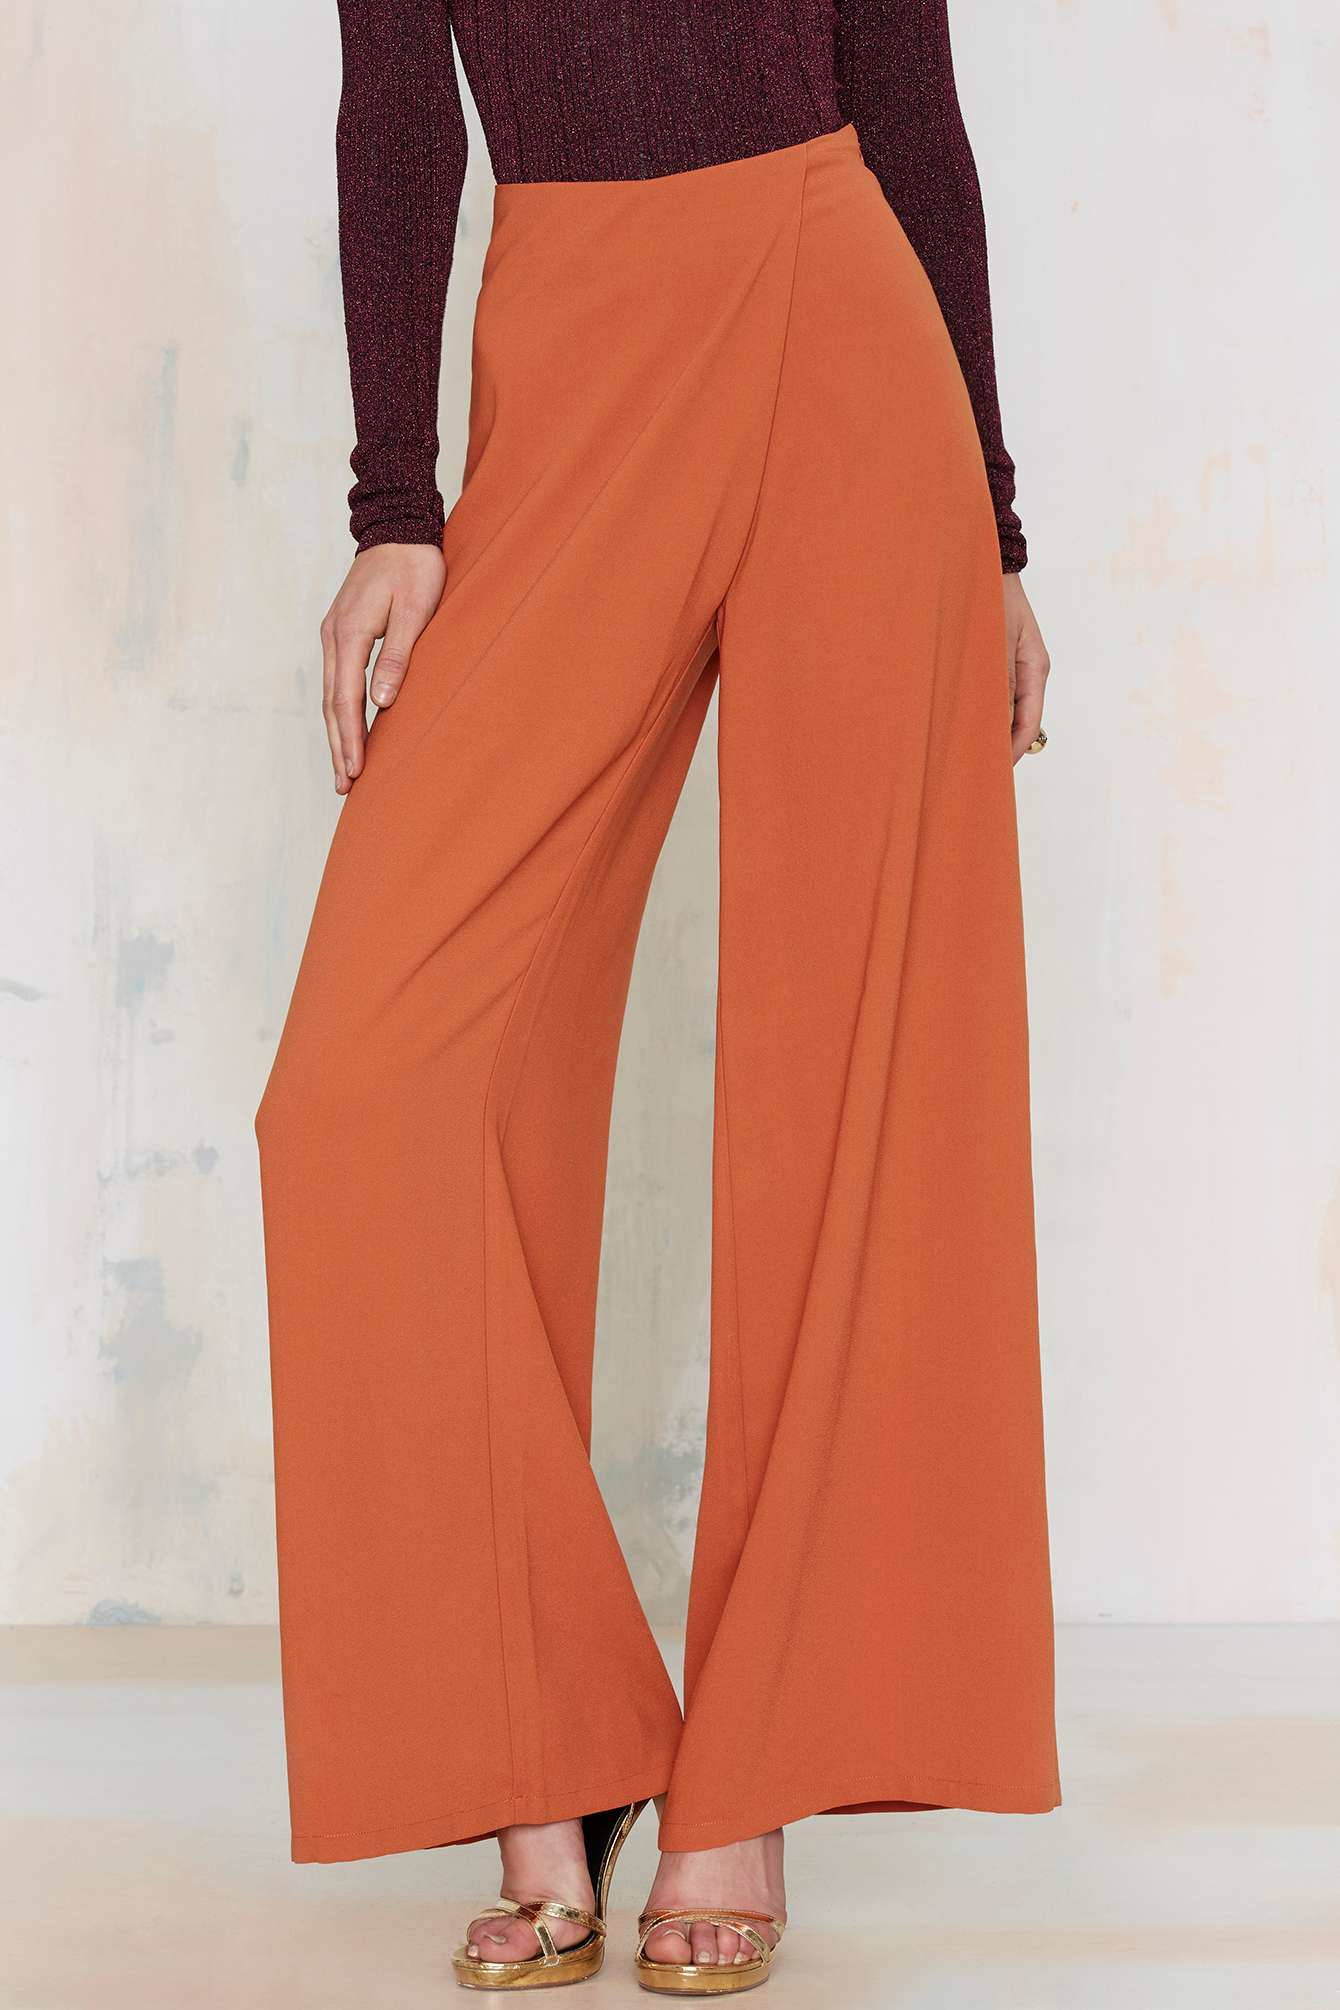 Nasty gal Totally Floored Wide Leg Pant in Orange | Lyst